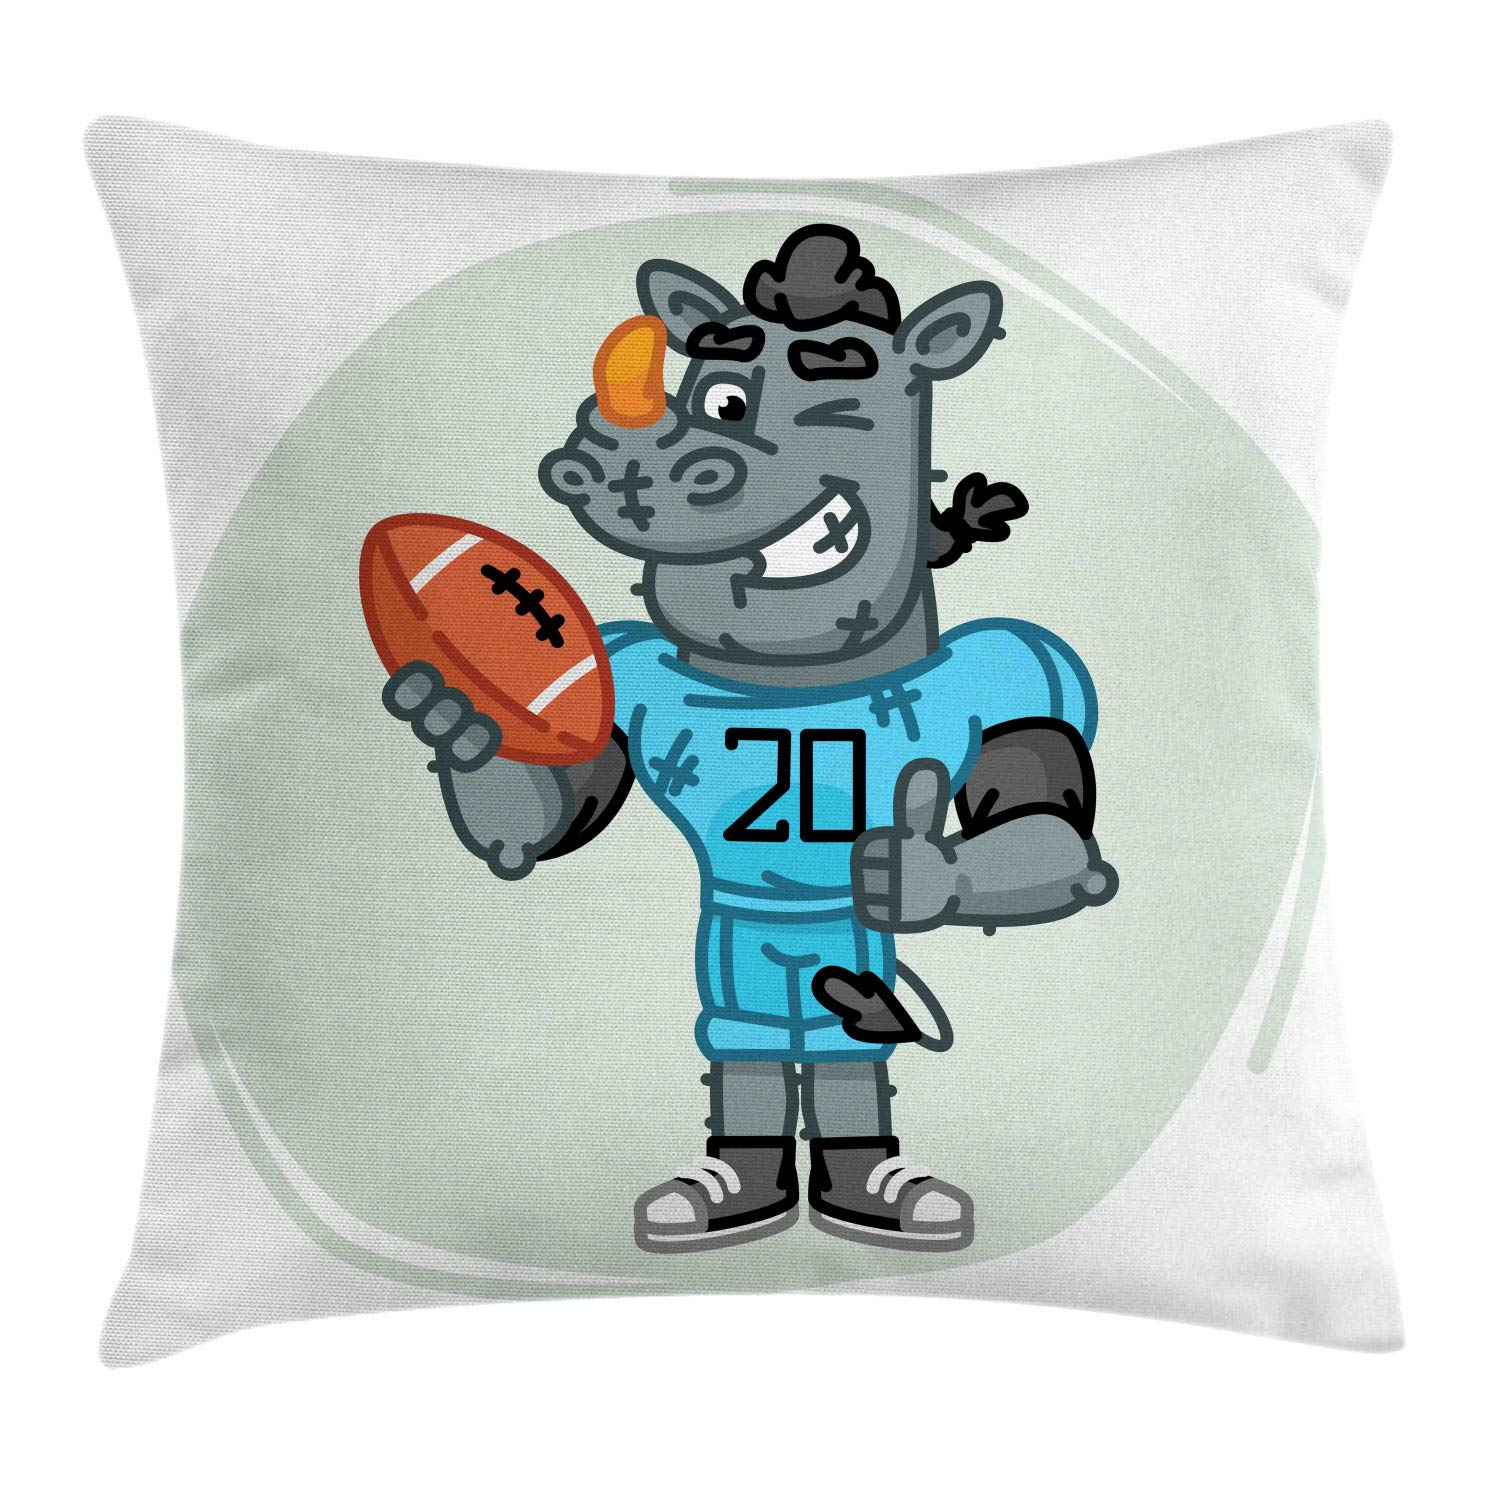 Ambesonne Rhino Throw Pillow Cushion Cover, Football Mascot Animal with Jersey and Ball Cartoon Style Composition Doodle Nursery, Decorative Square Accent Pillow Case, 36'' X 36'', Multicolor by Ambesonne